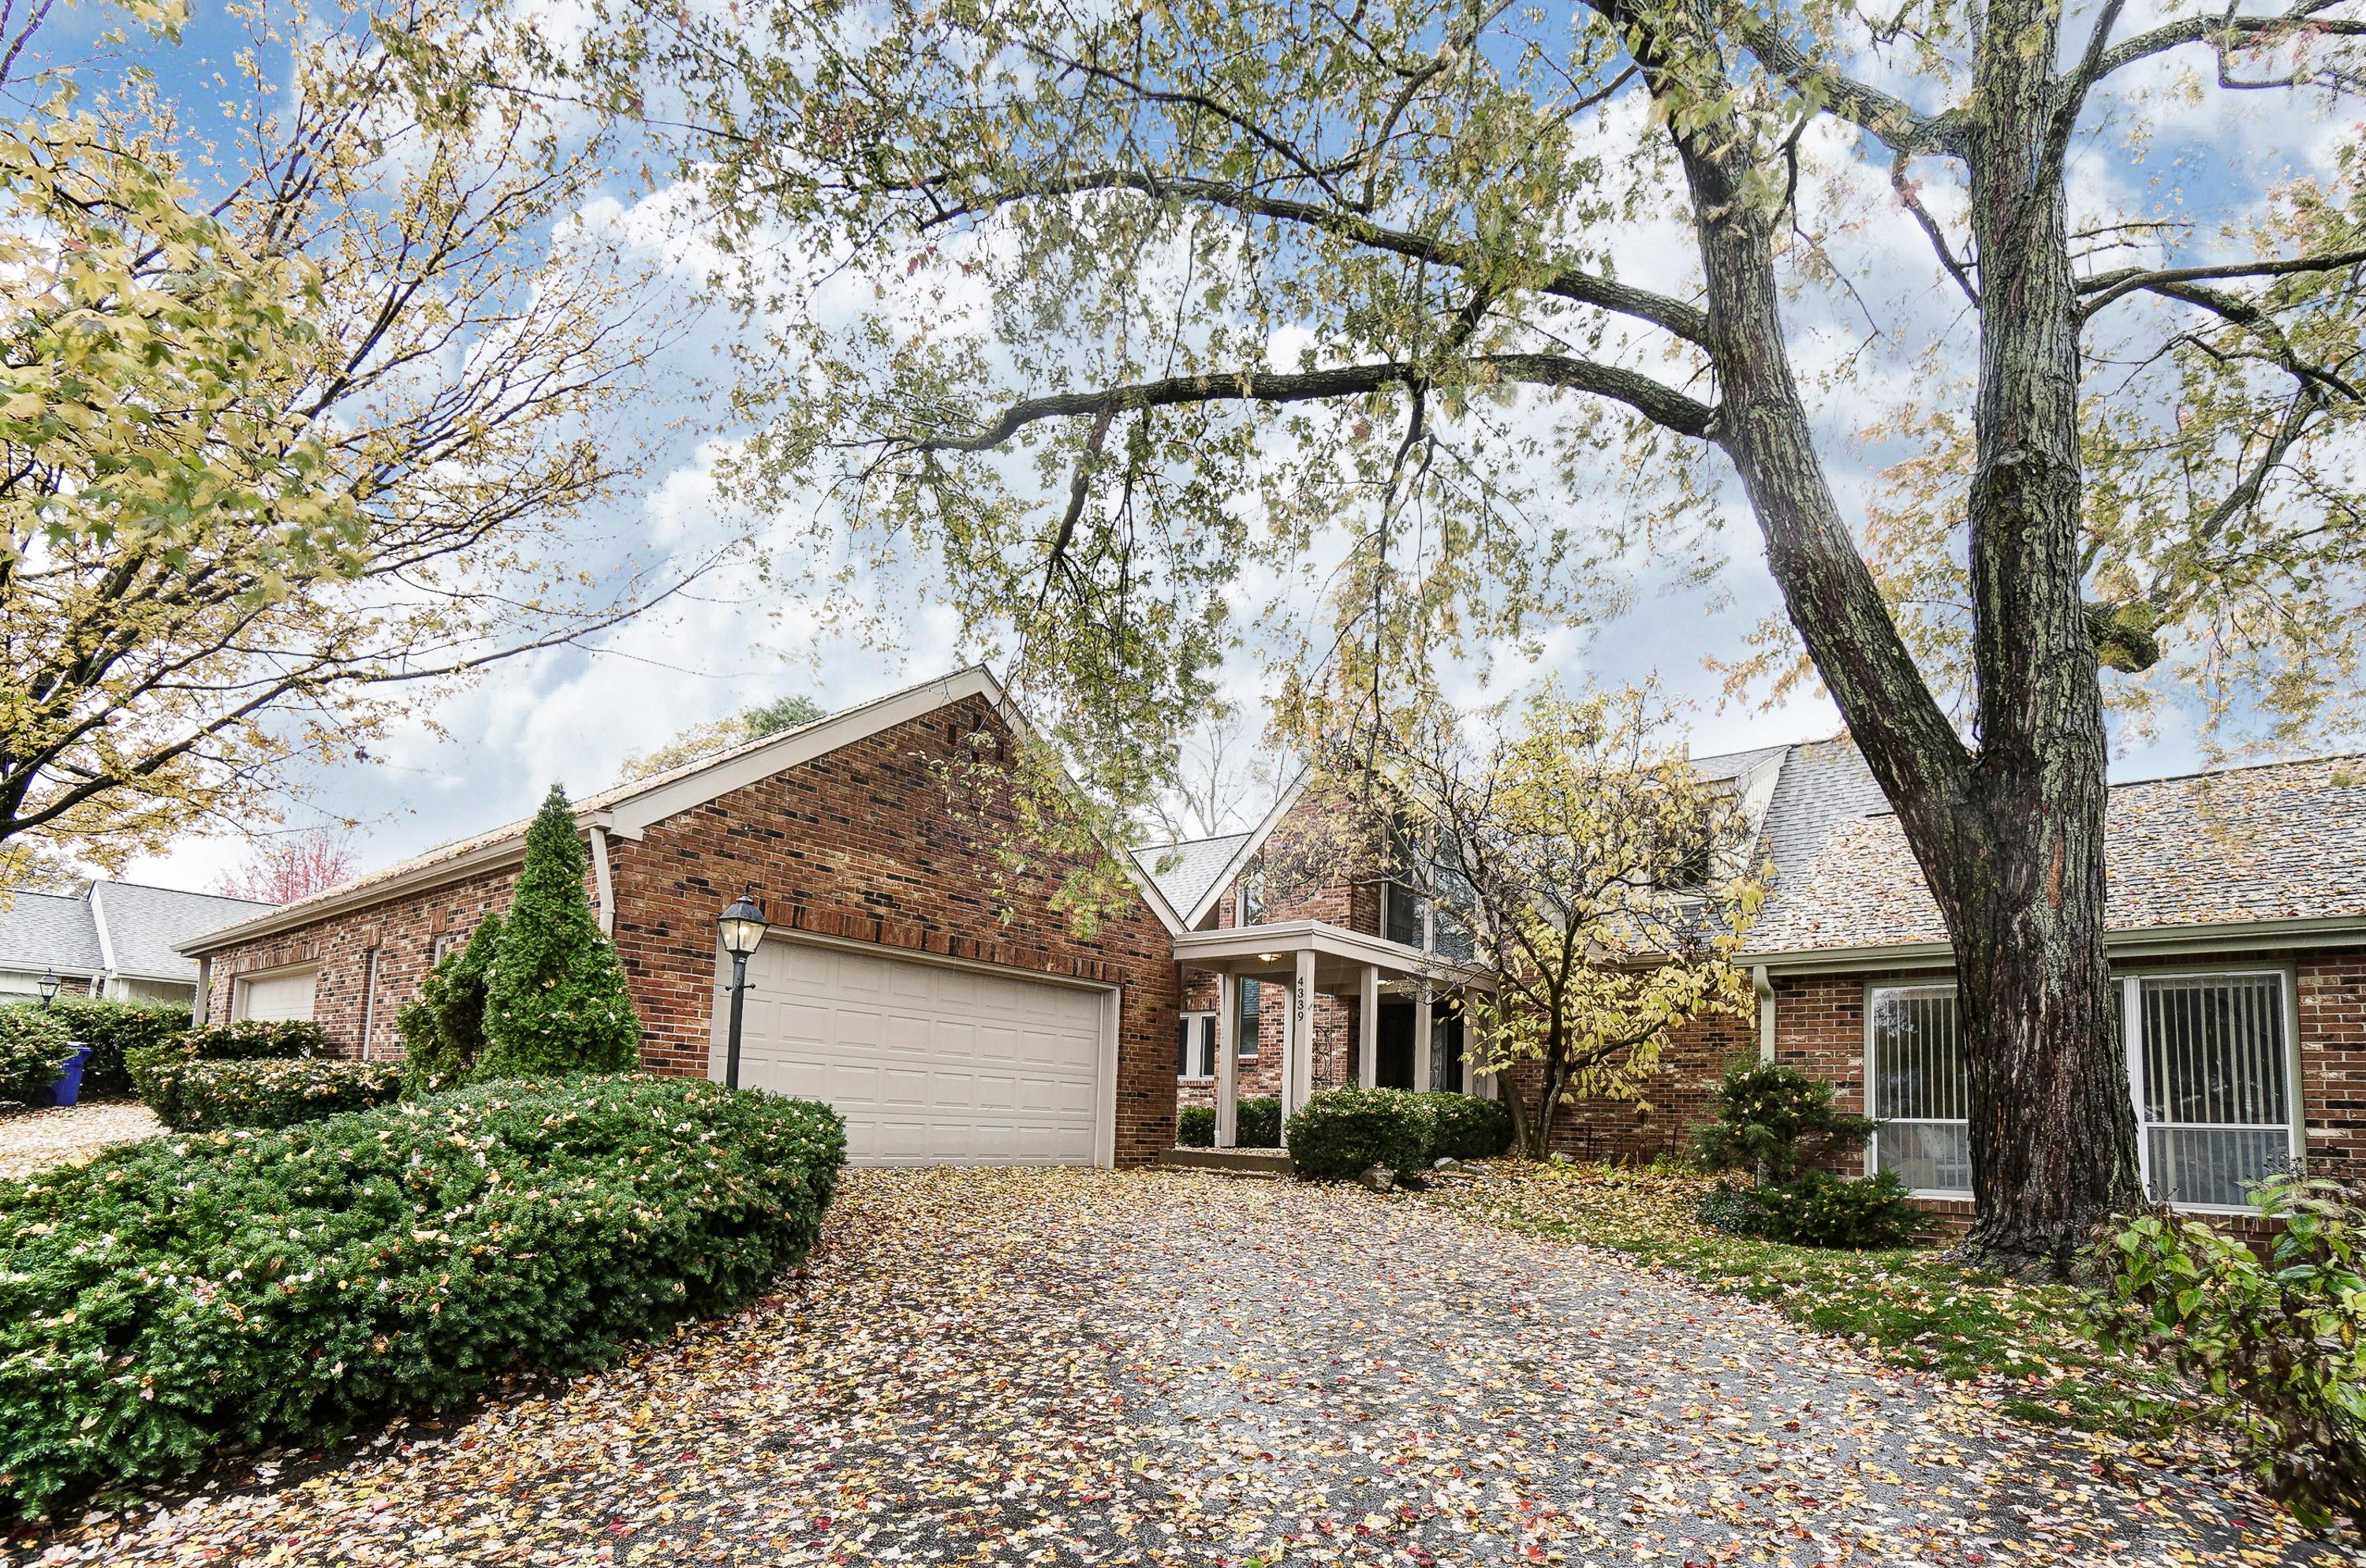 4339 Airendel Court, Upper Arlington, Ohio 43220, 3 Bedrooms Bedrooms, ,3 BathroomsBathrooms,Residential,For Sale,Airendel,220038574